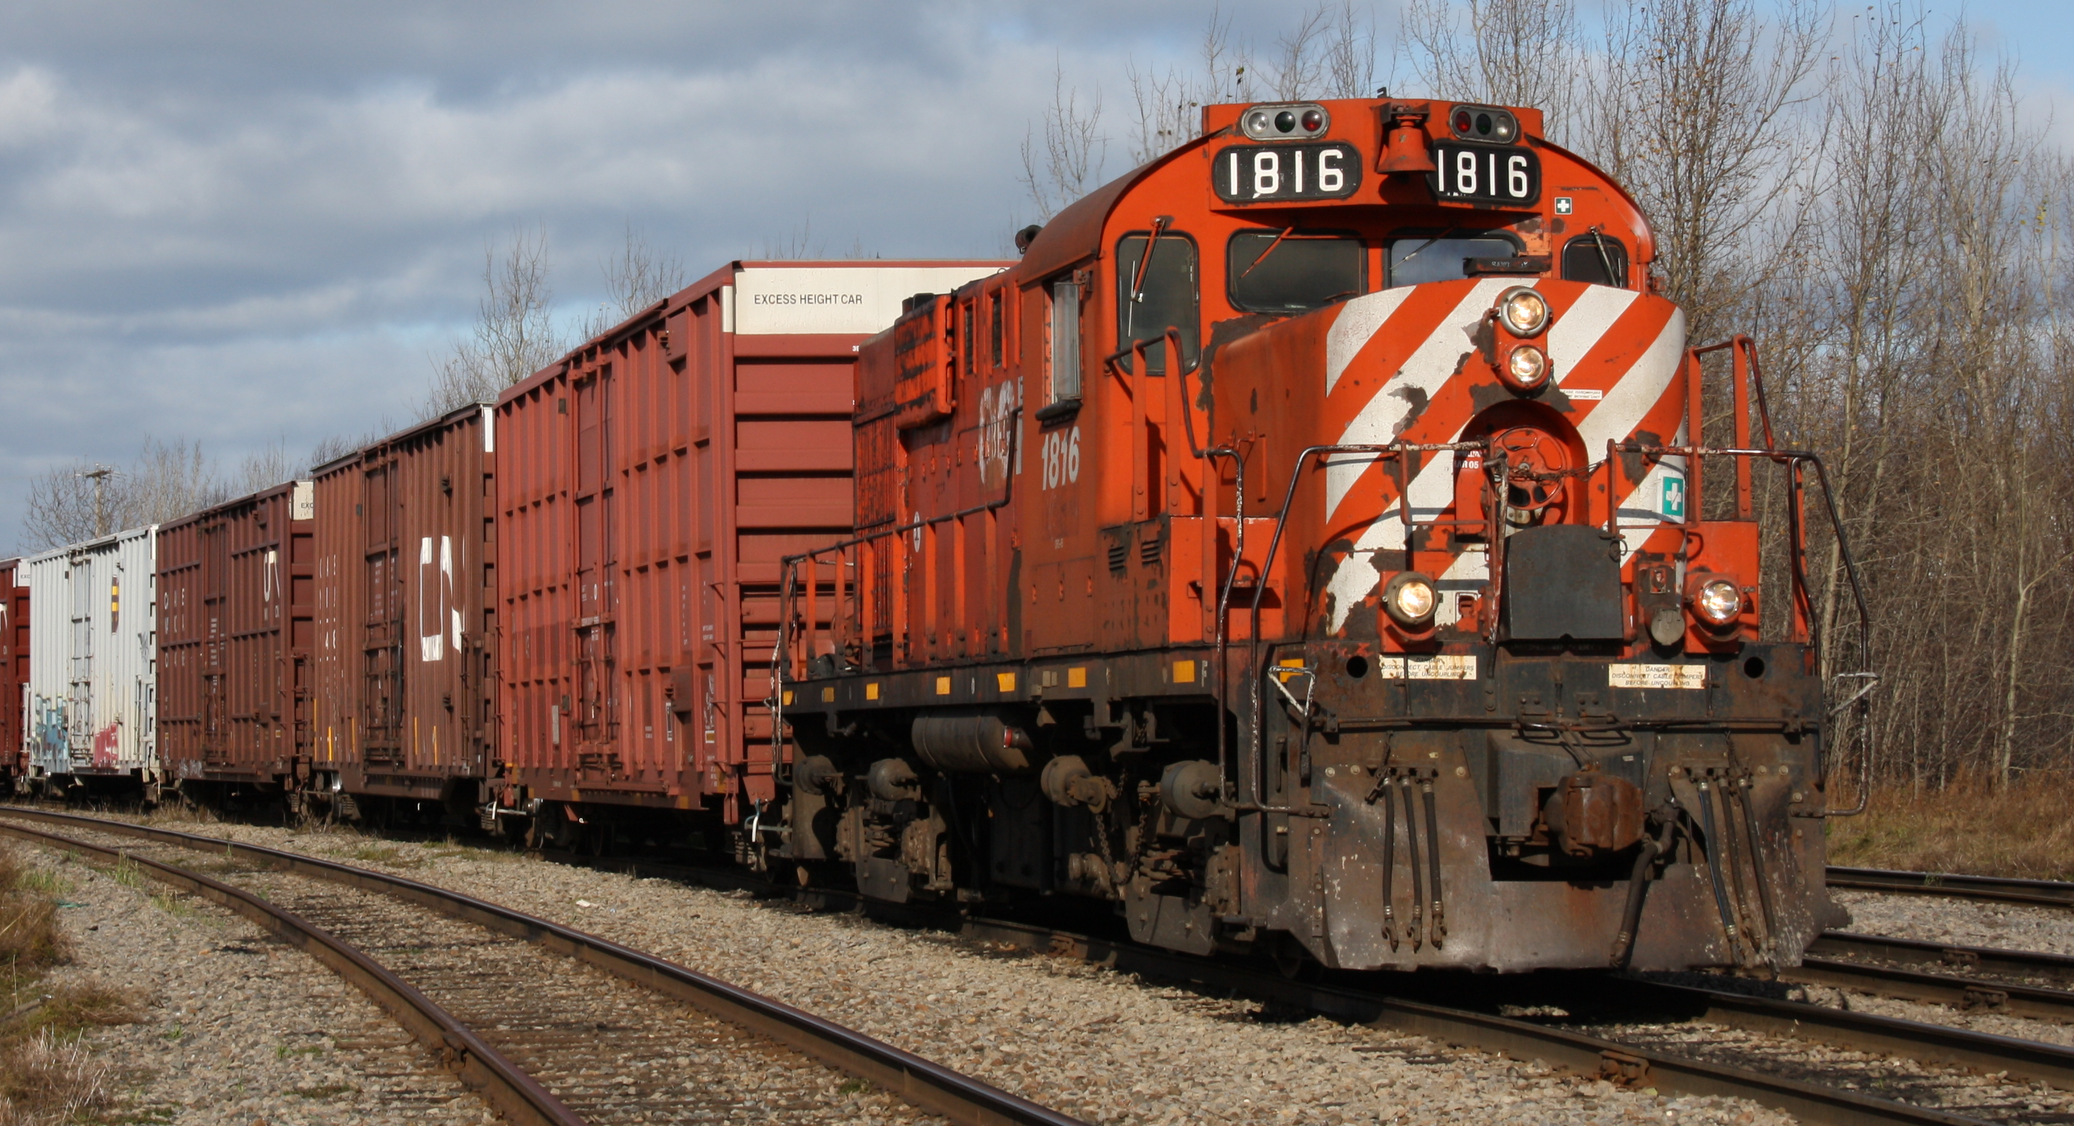 . : Protect during rail transport